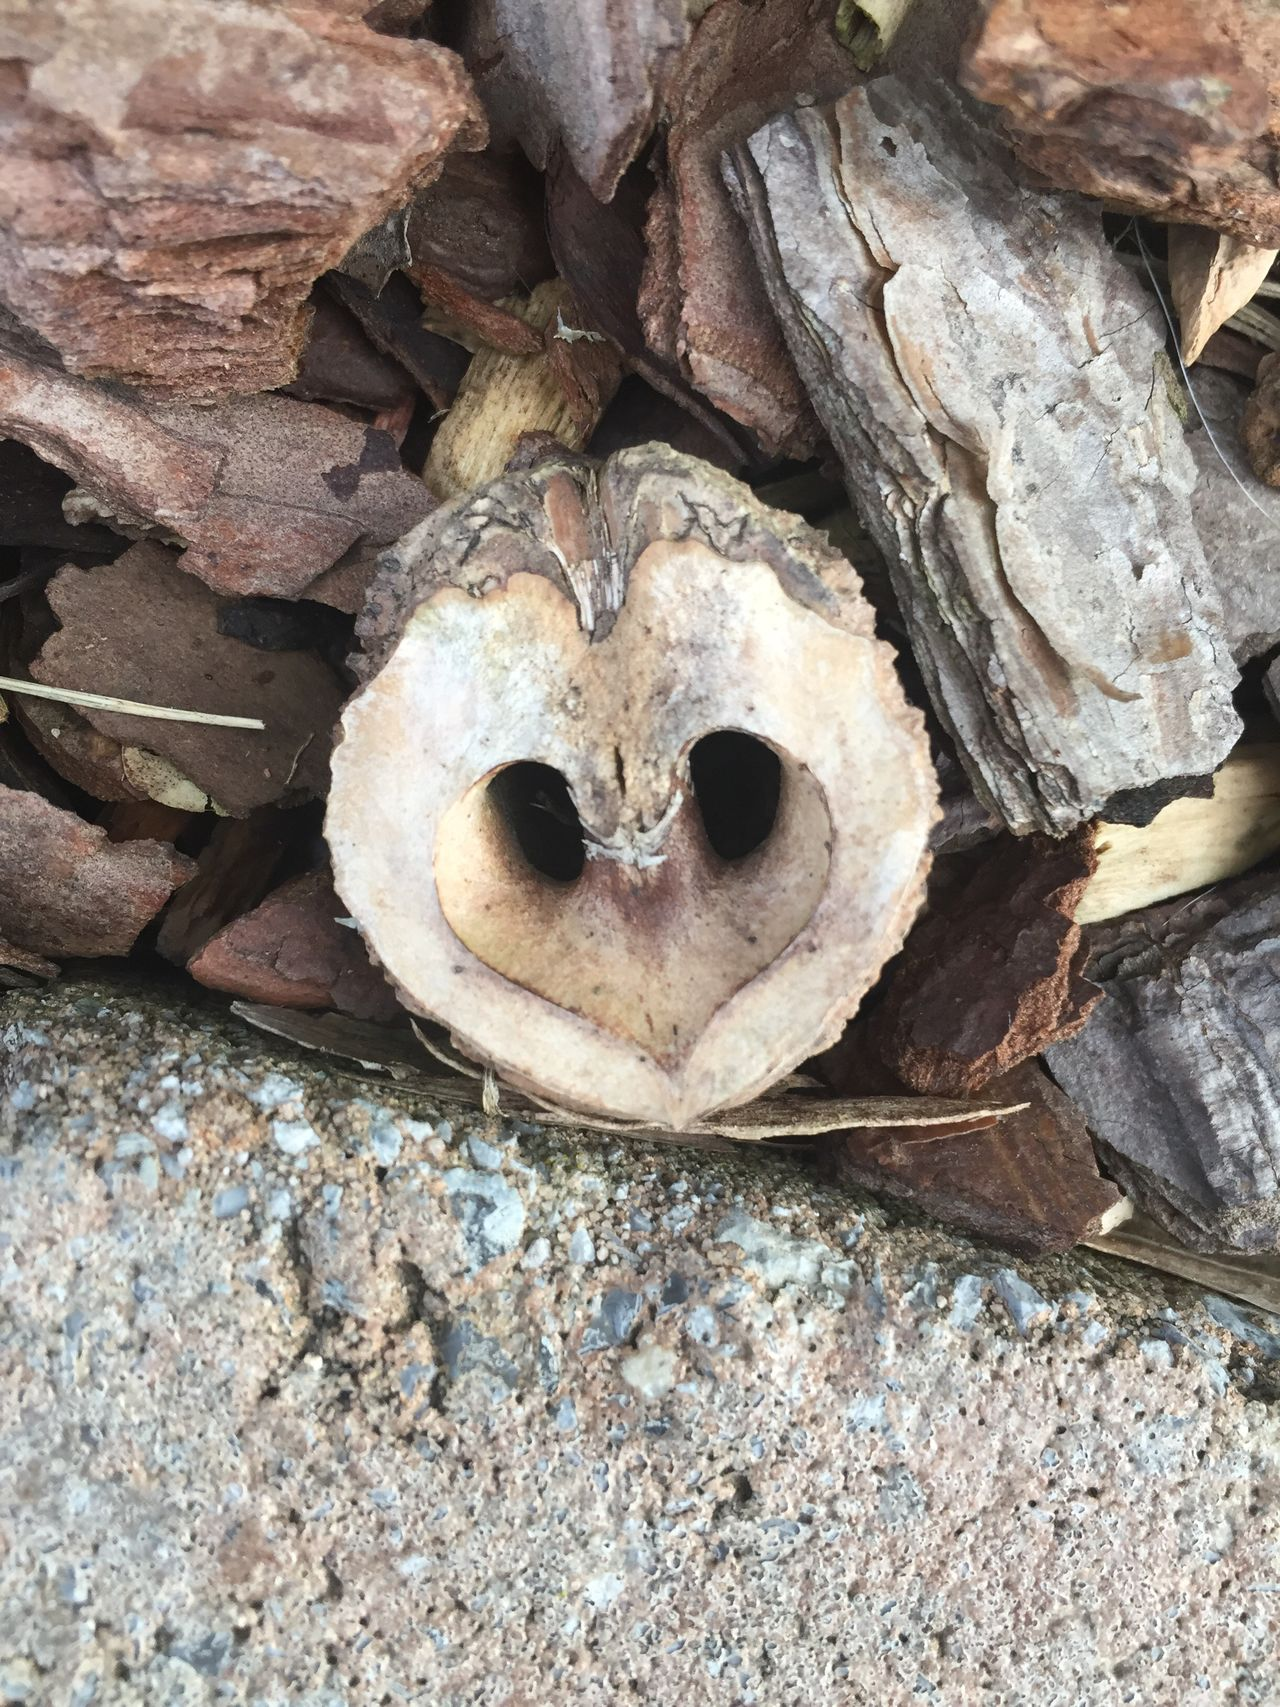 Love of nature Close-up heart Shape Nature front yard Mulch bark chips Outdoors Nut beauty Love